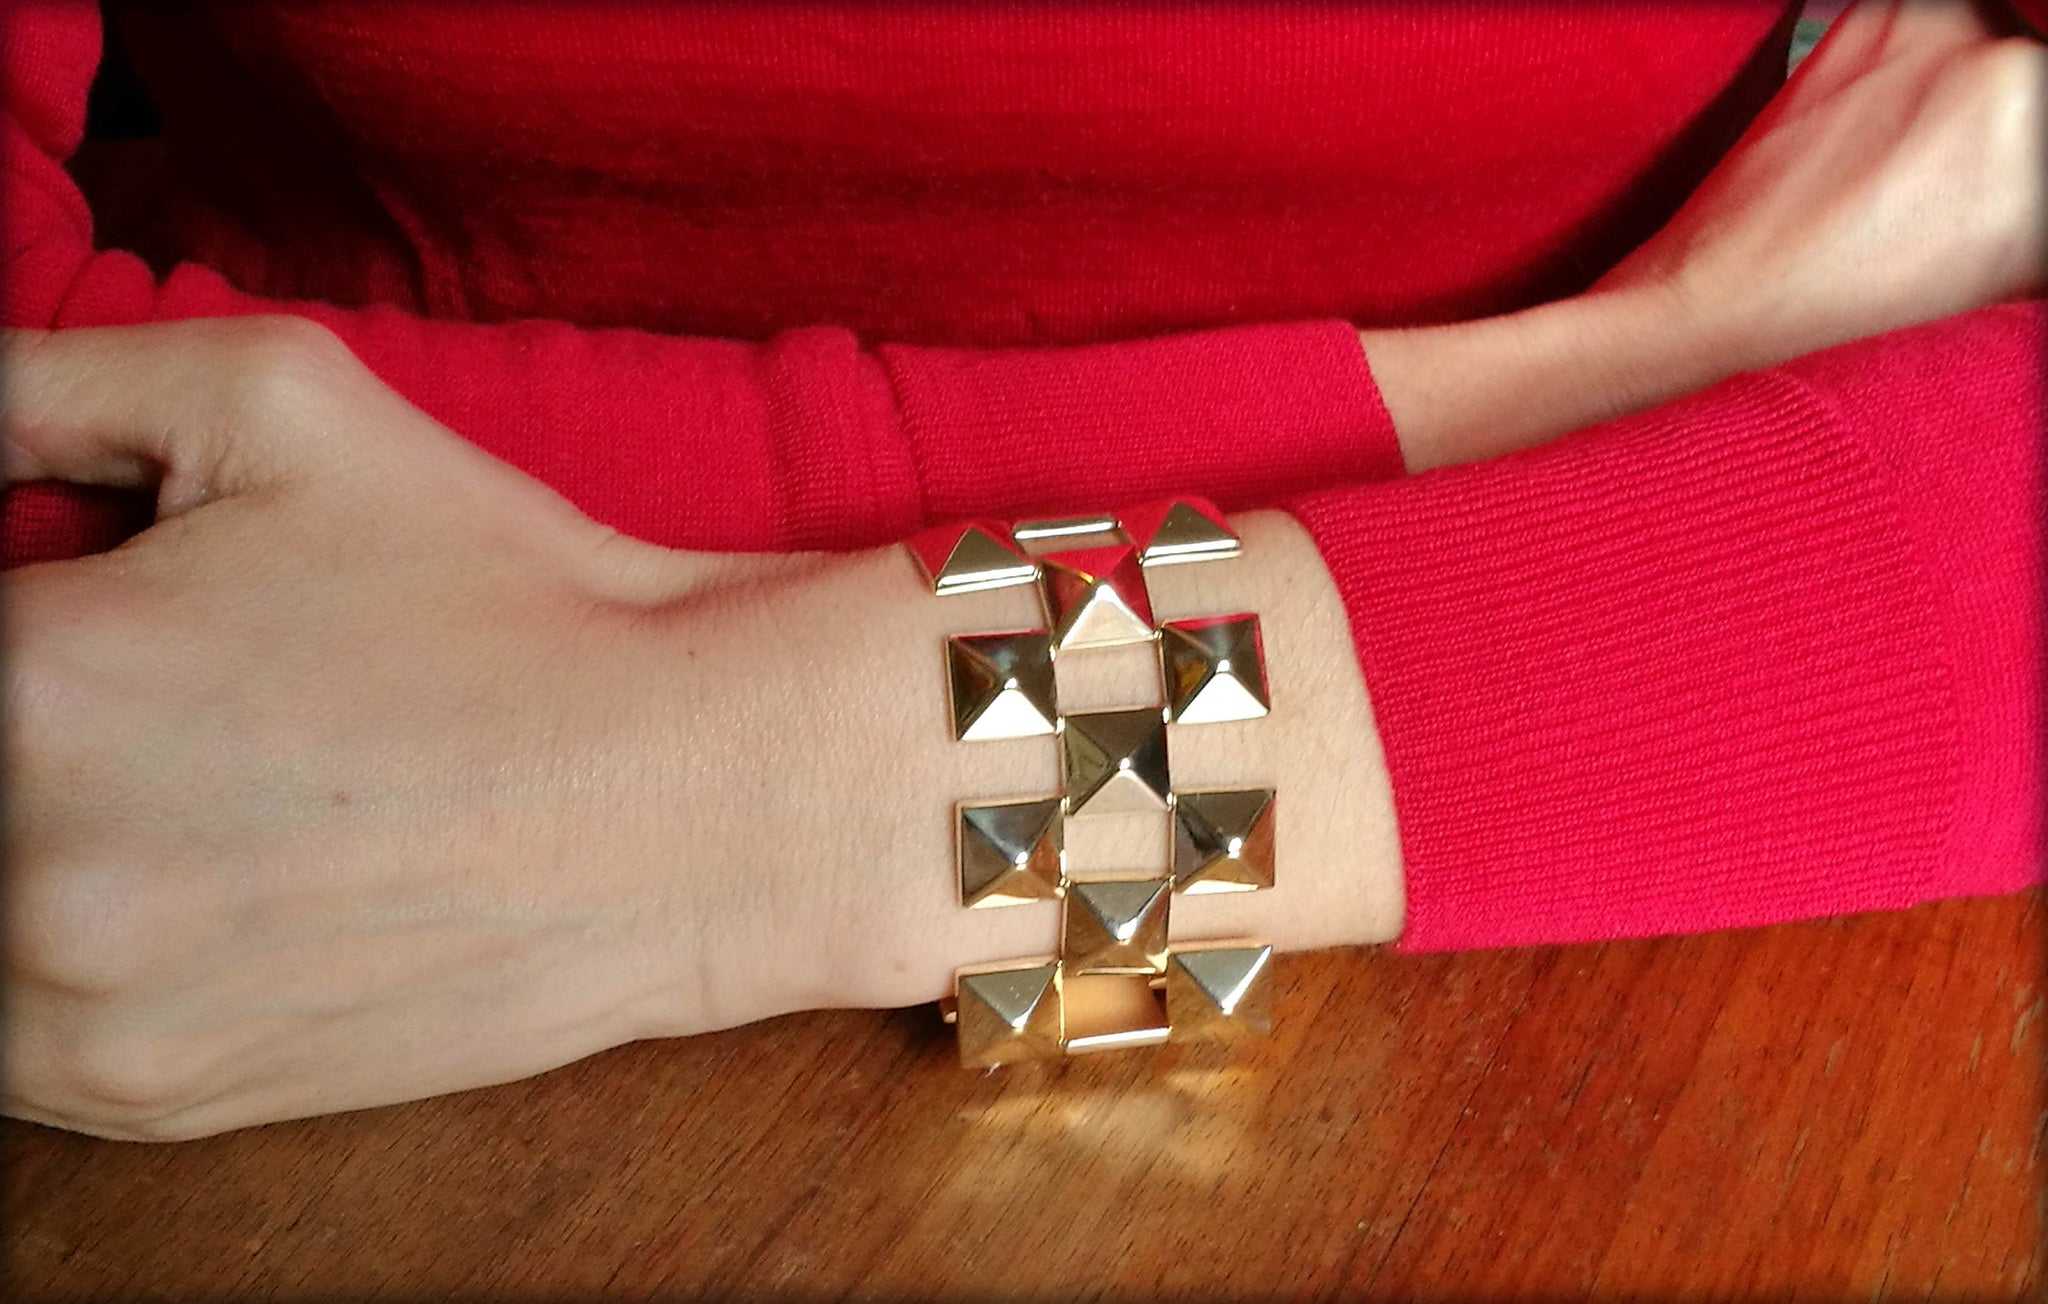 Retro Vintage 1960s Pyramid Tank Bracelet in 14k Yellow Gold on wrist